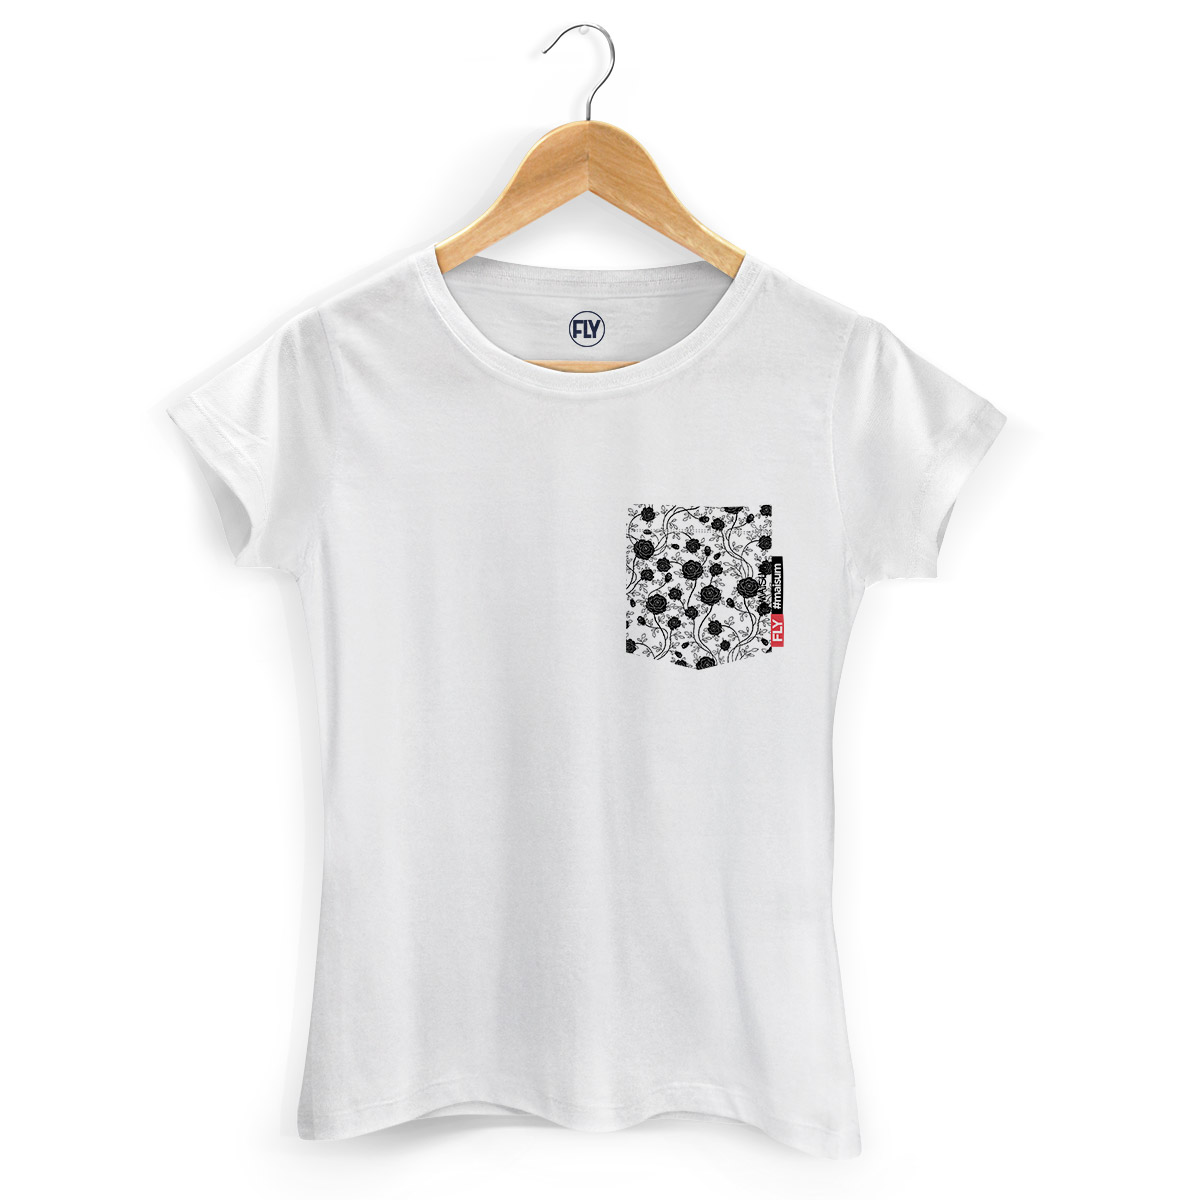 Camiseta Feminina Banda Fly Pocket